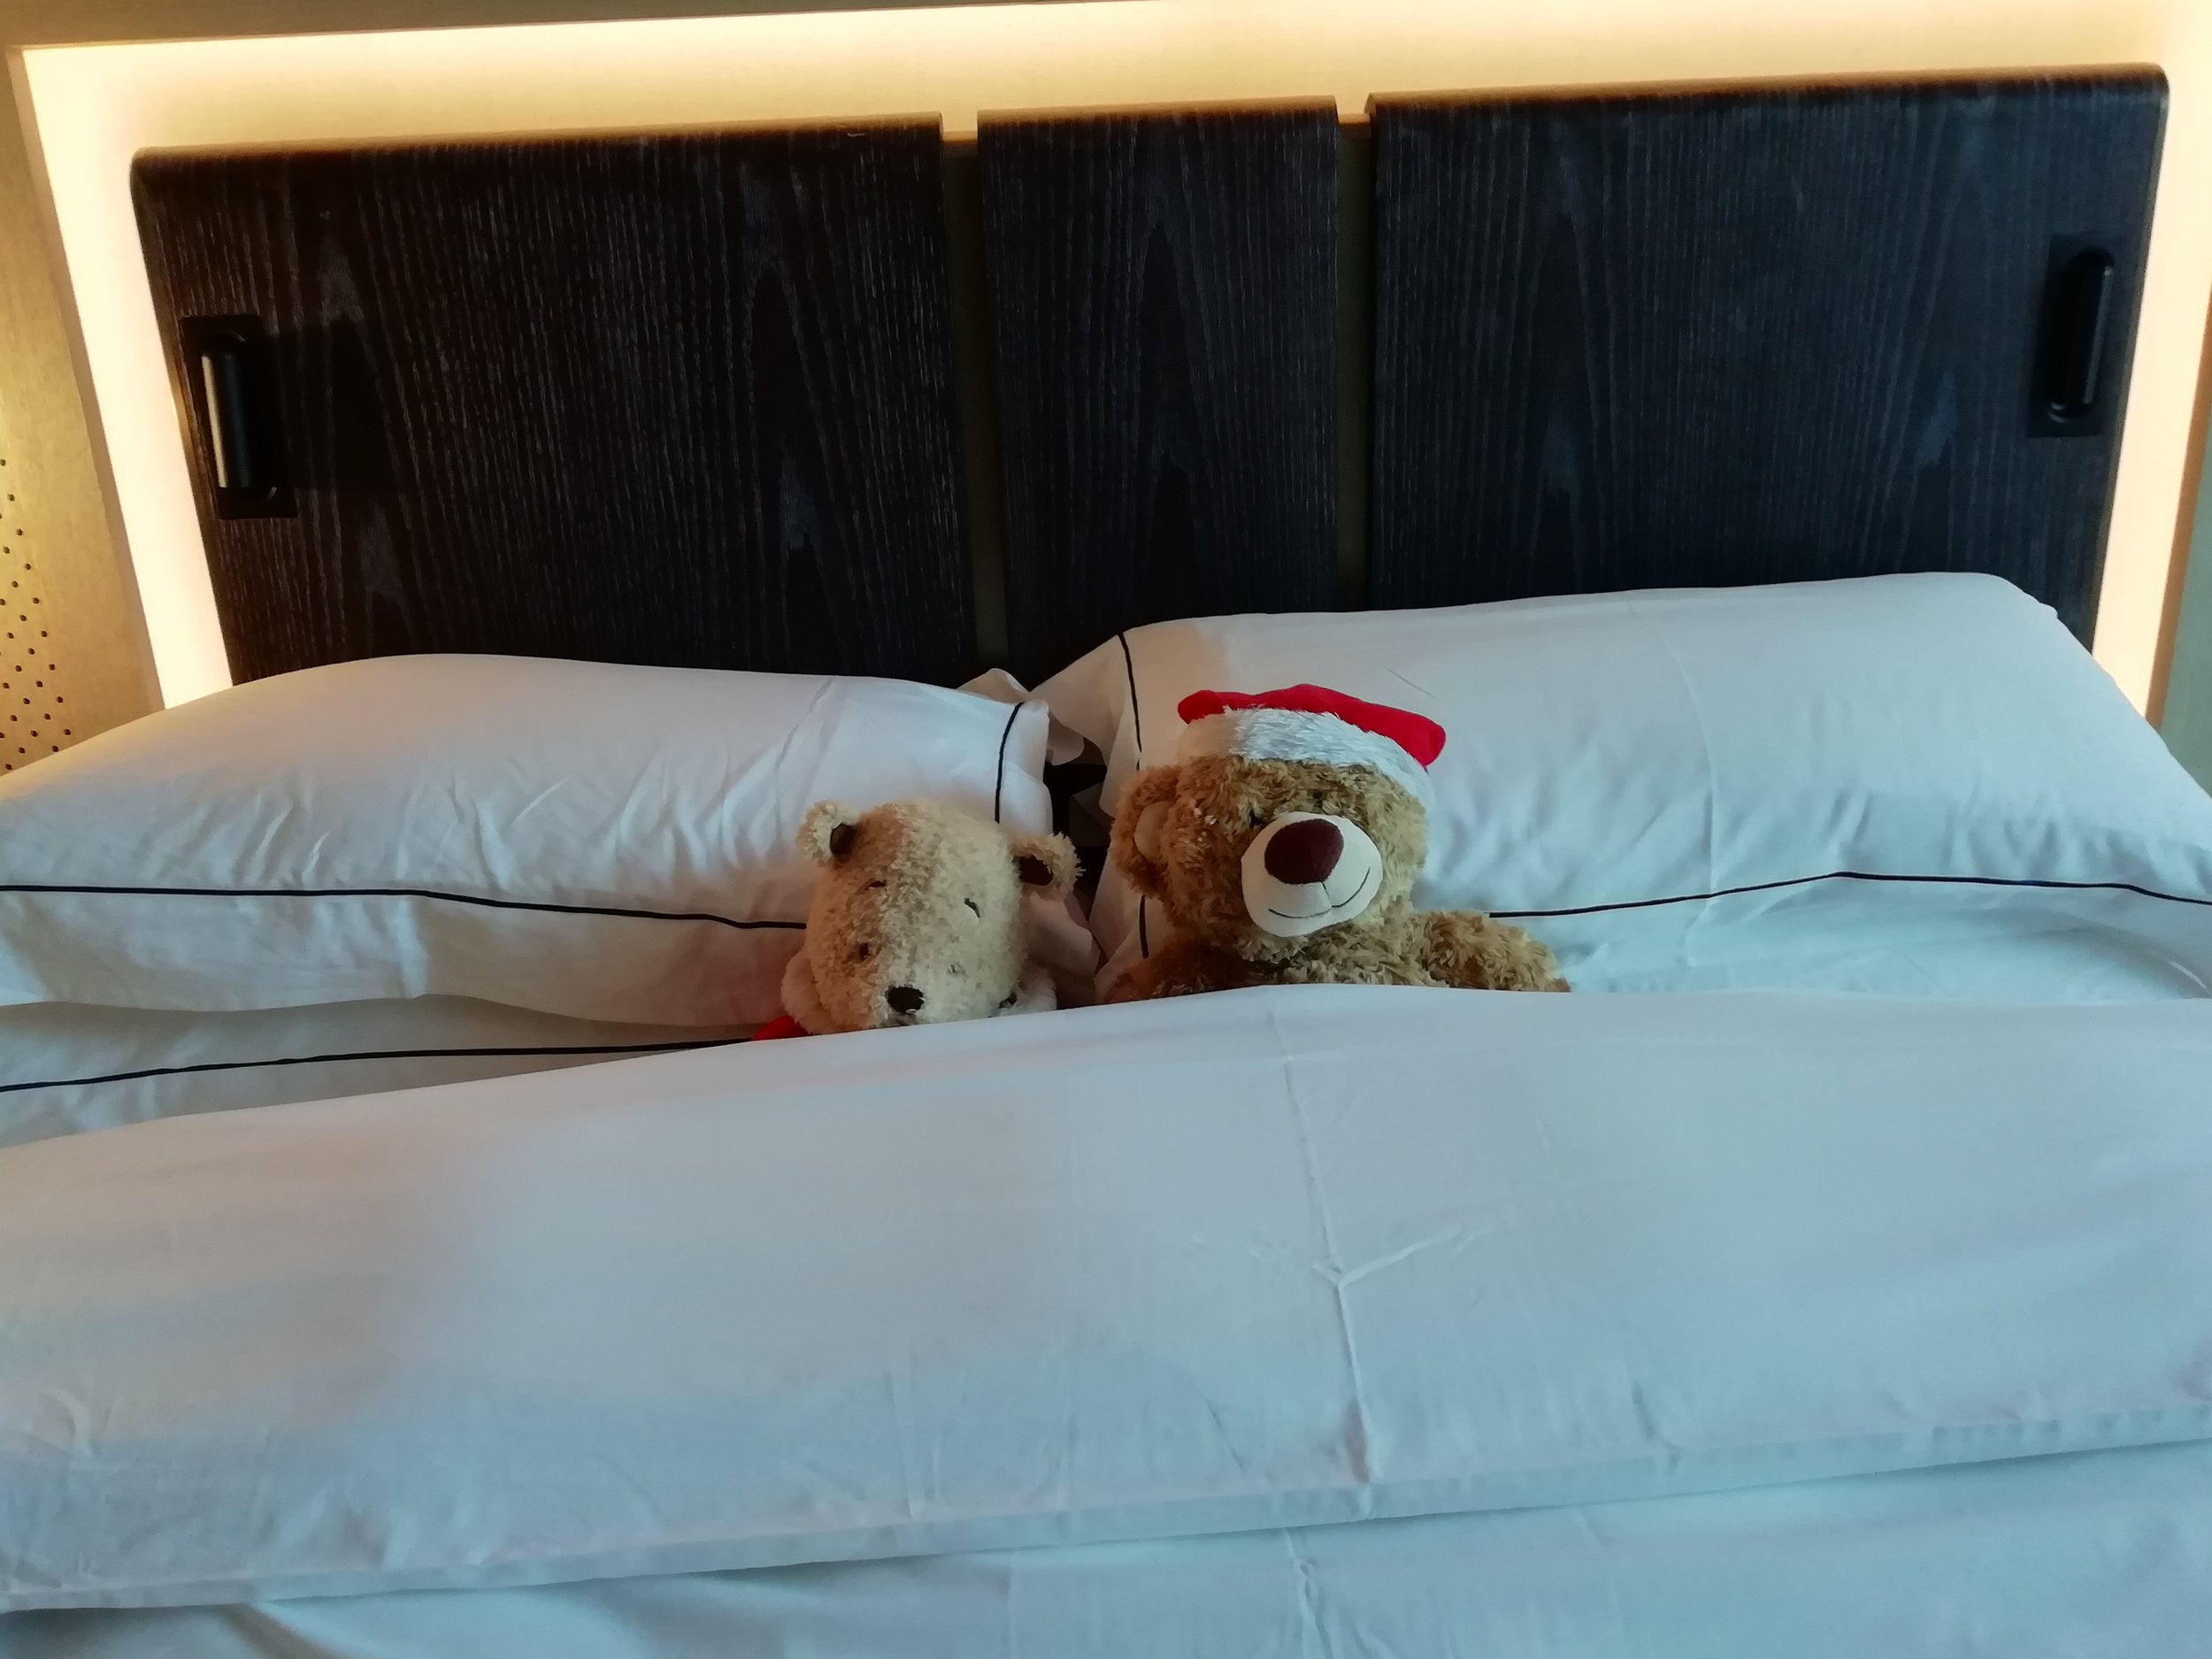 Housekeeping having fun with the Christmas Bears